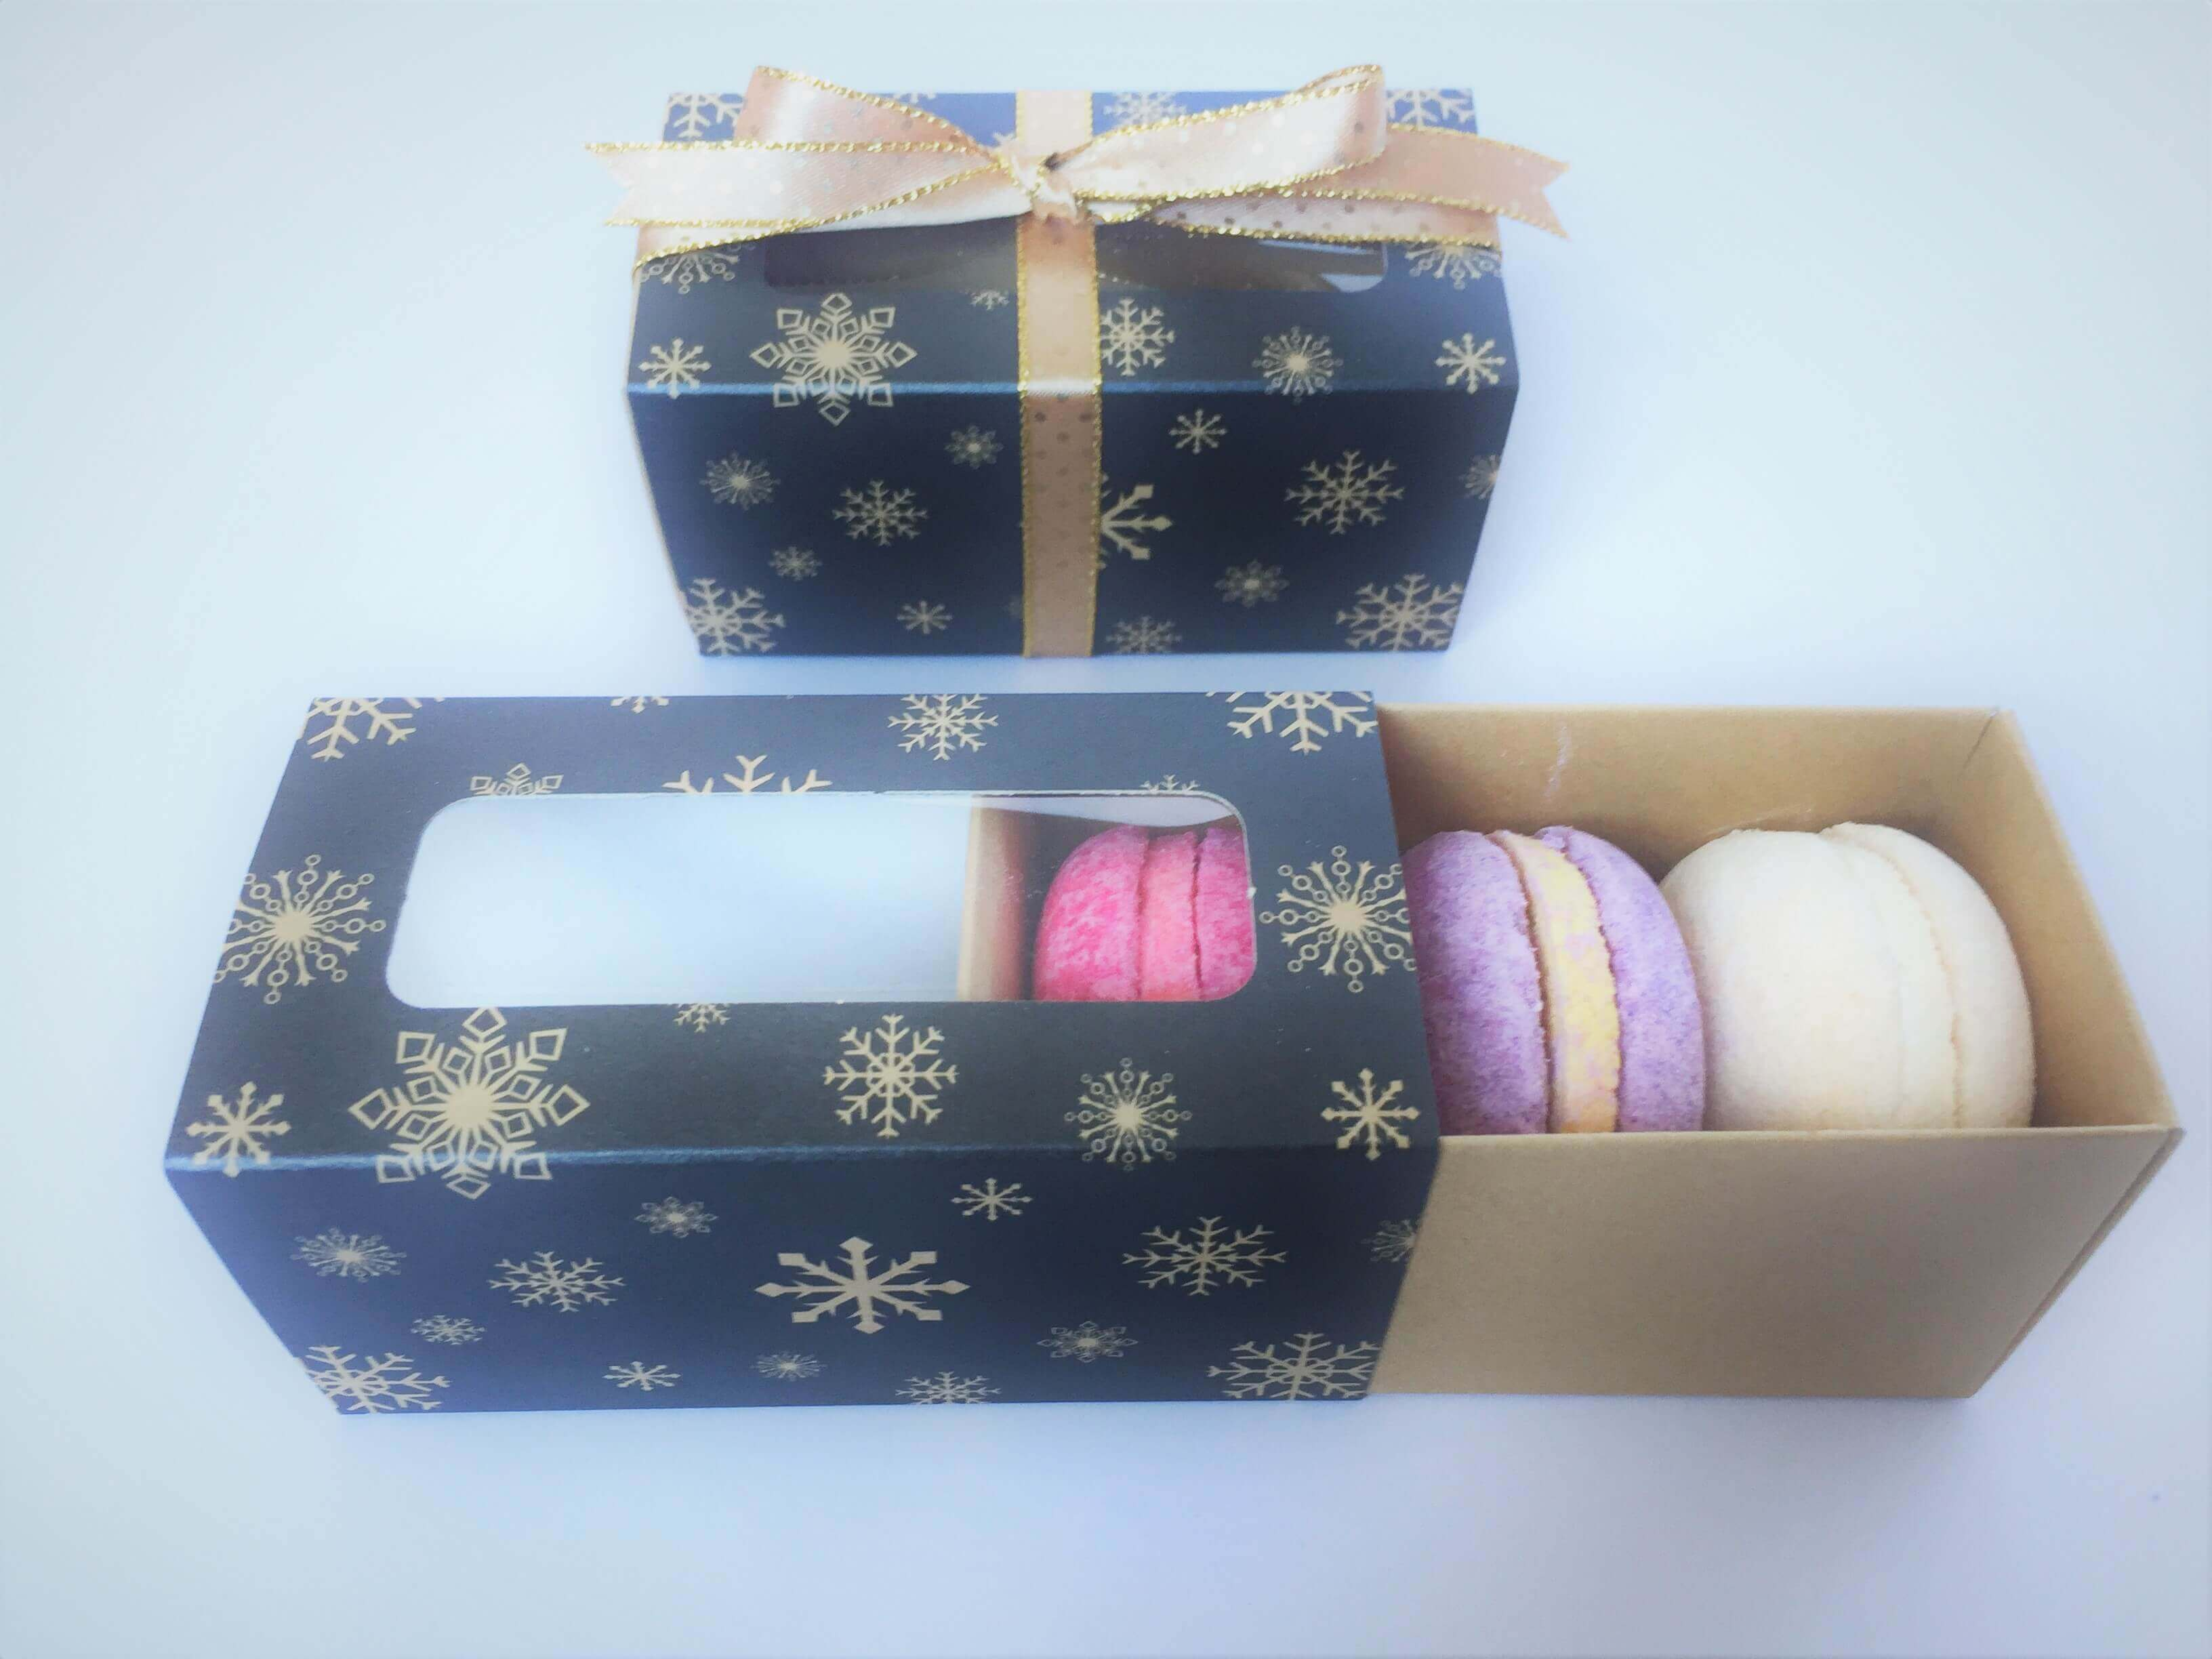 3 large or 4 Pack Macaron Box with Xmas Print, windowed